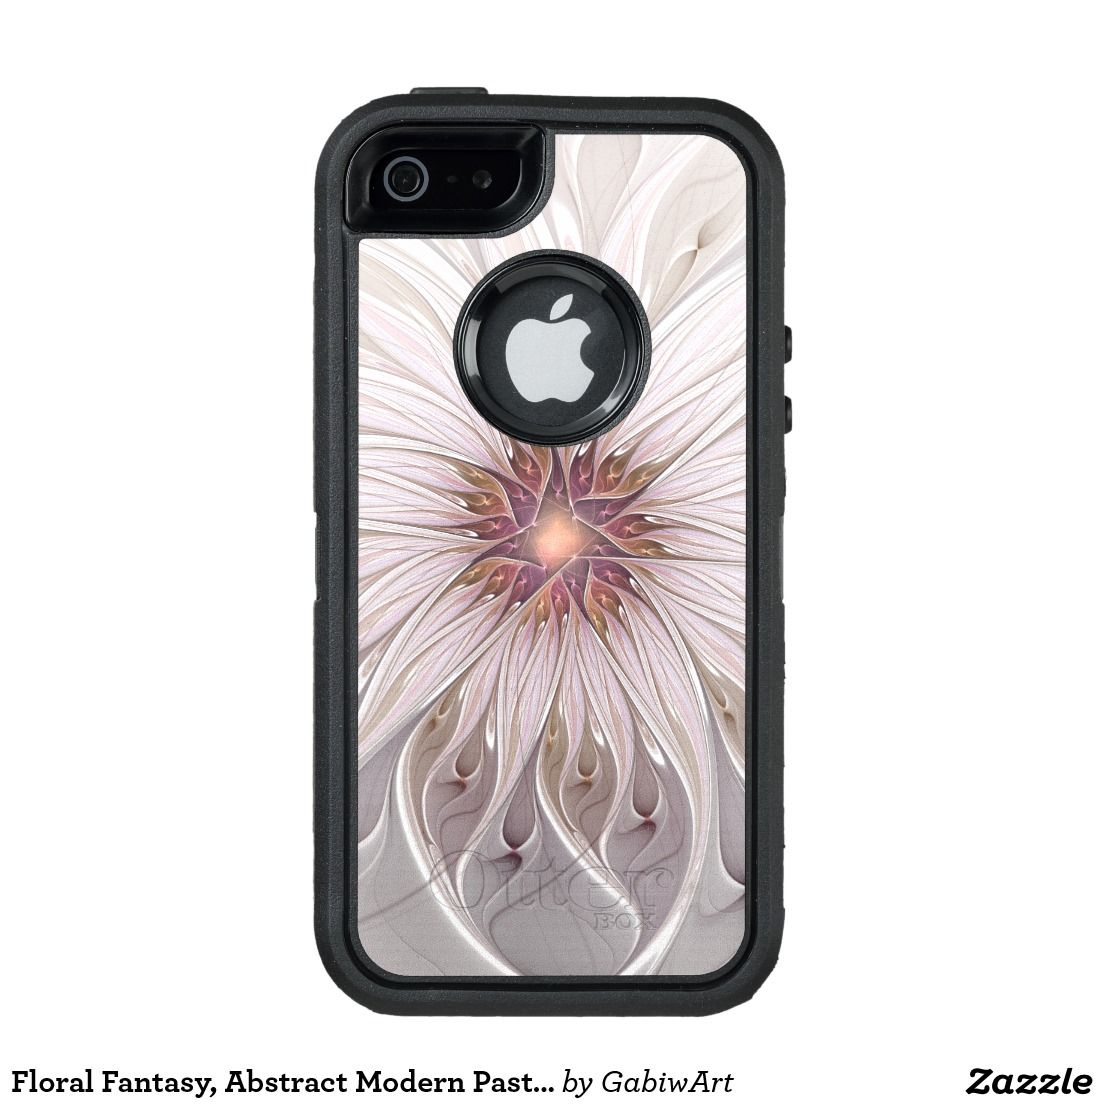 Floral Fantasy, Abstract Modern Pastel Flower OtterBox Defender iPhone Case